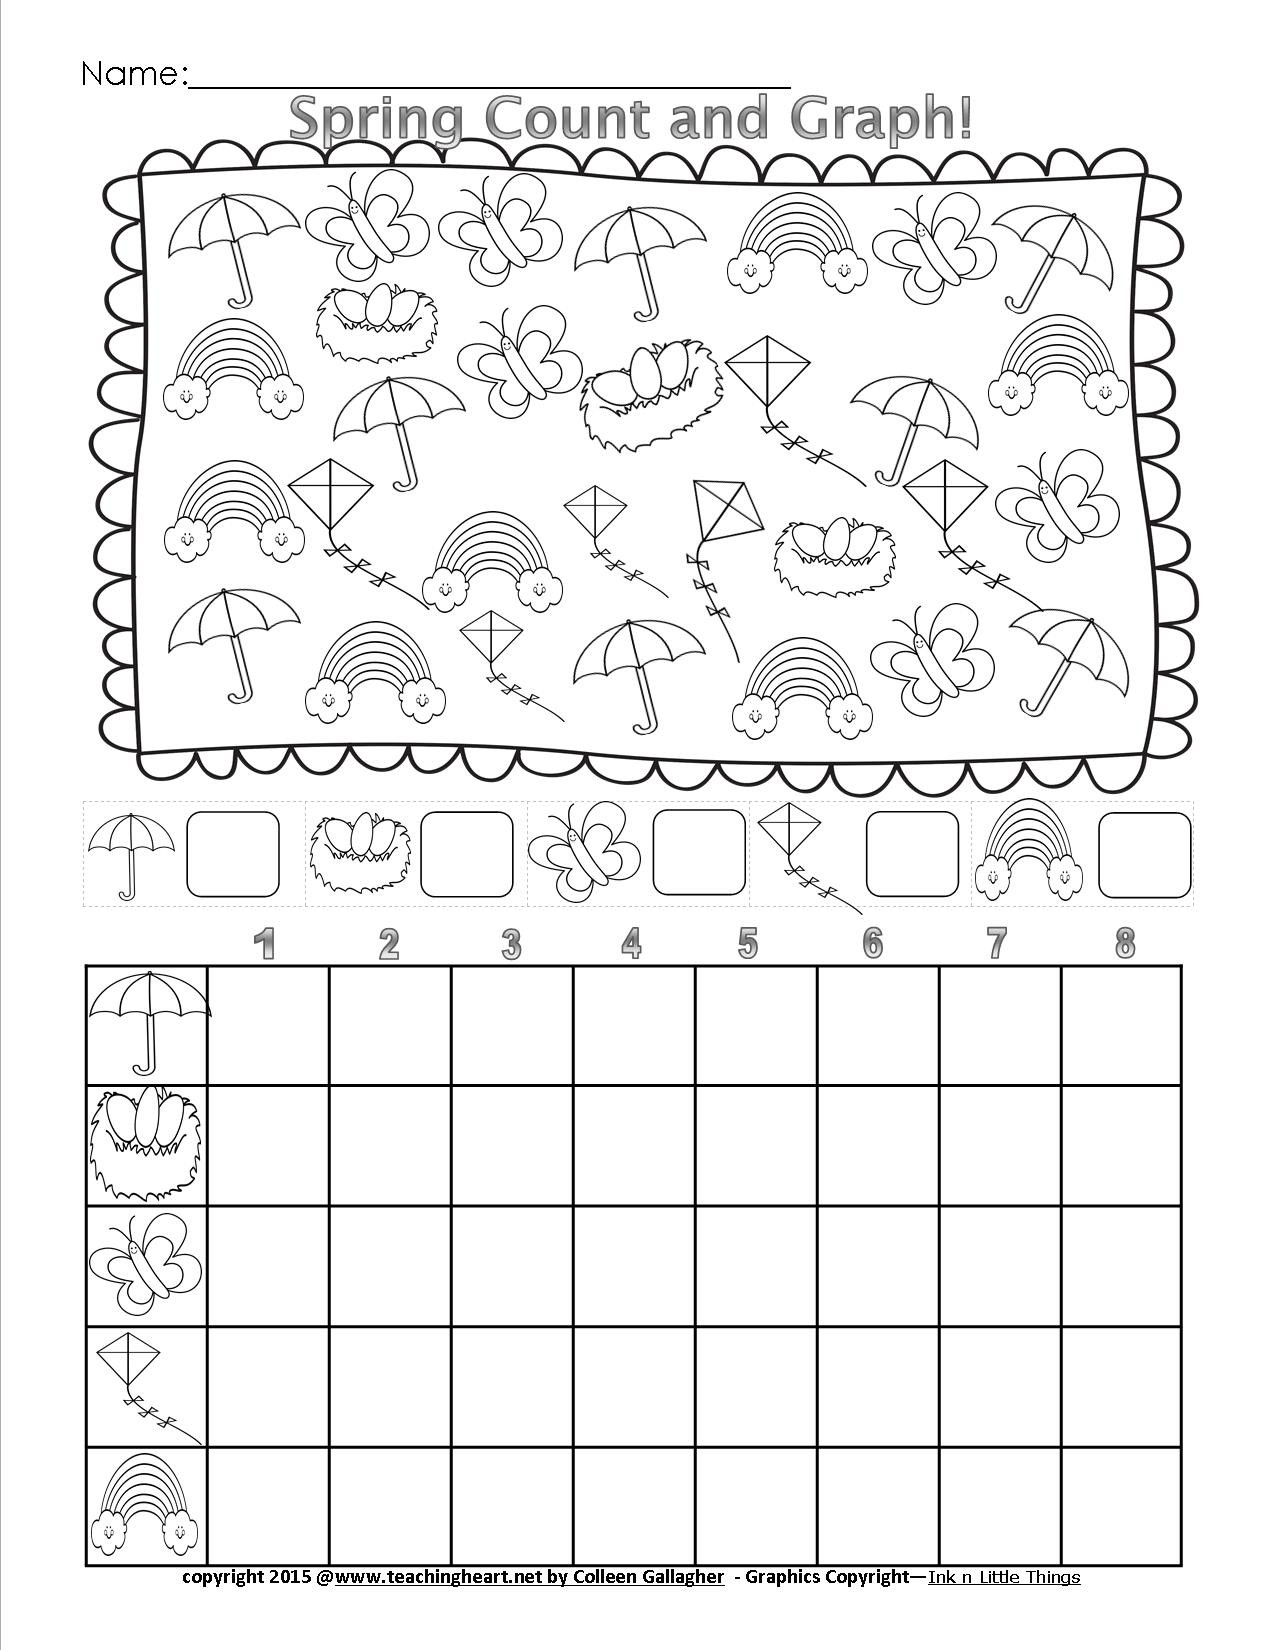 Sorting Shapes Worksheets First Grade Spring Count and Graph Free Teaching Heart Blog Graphing